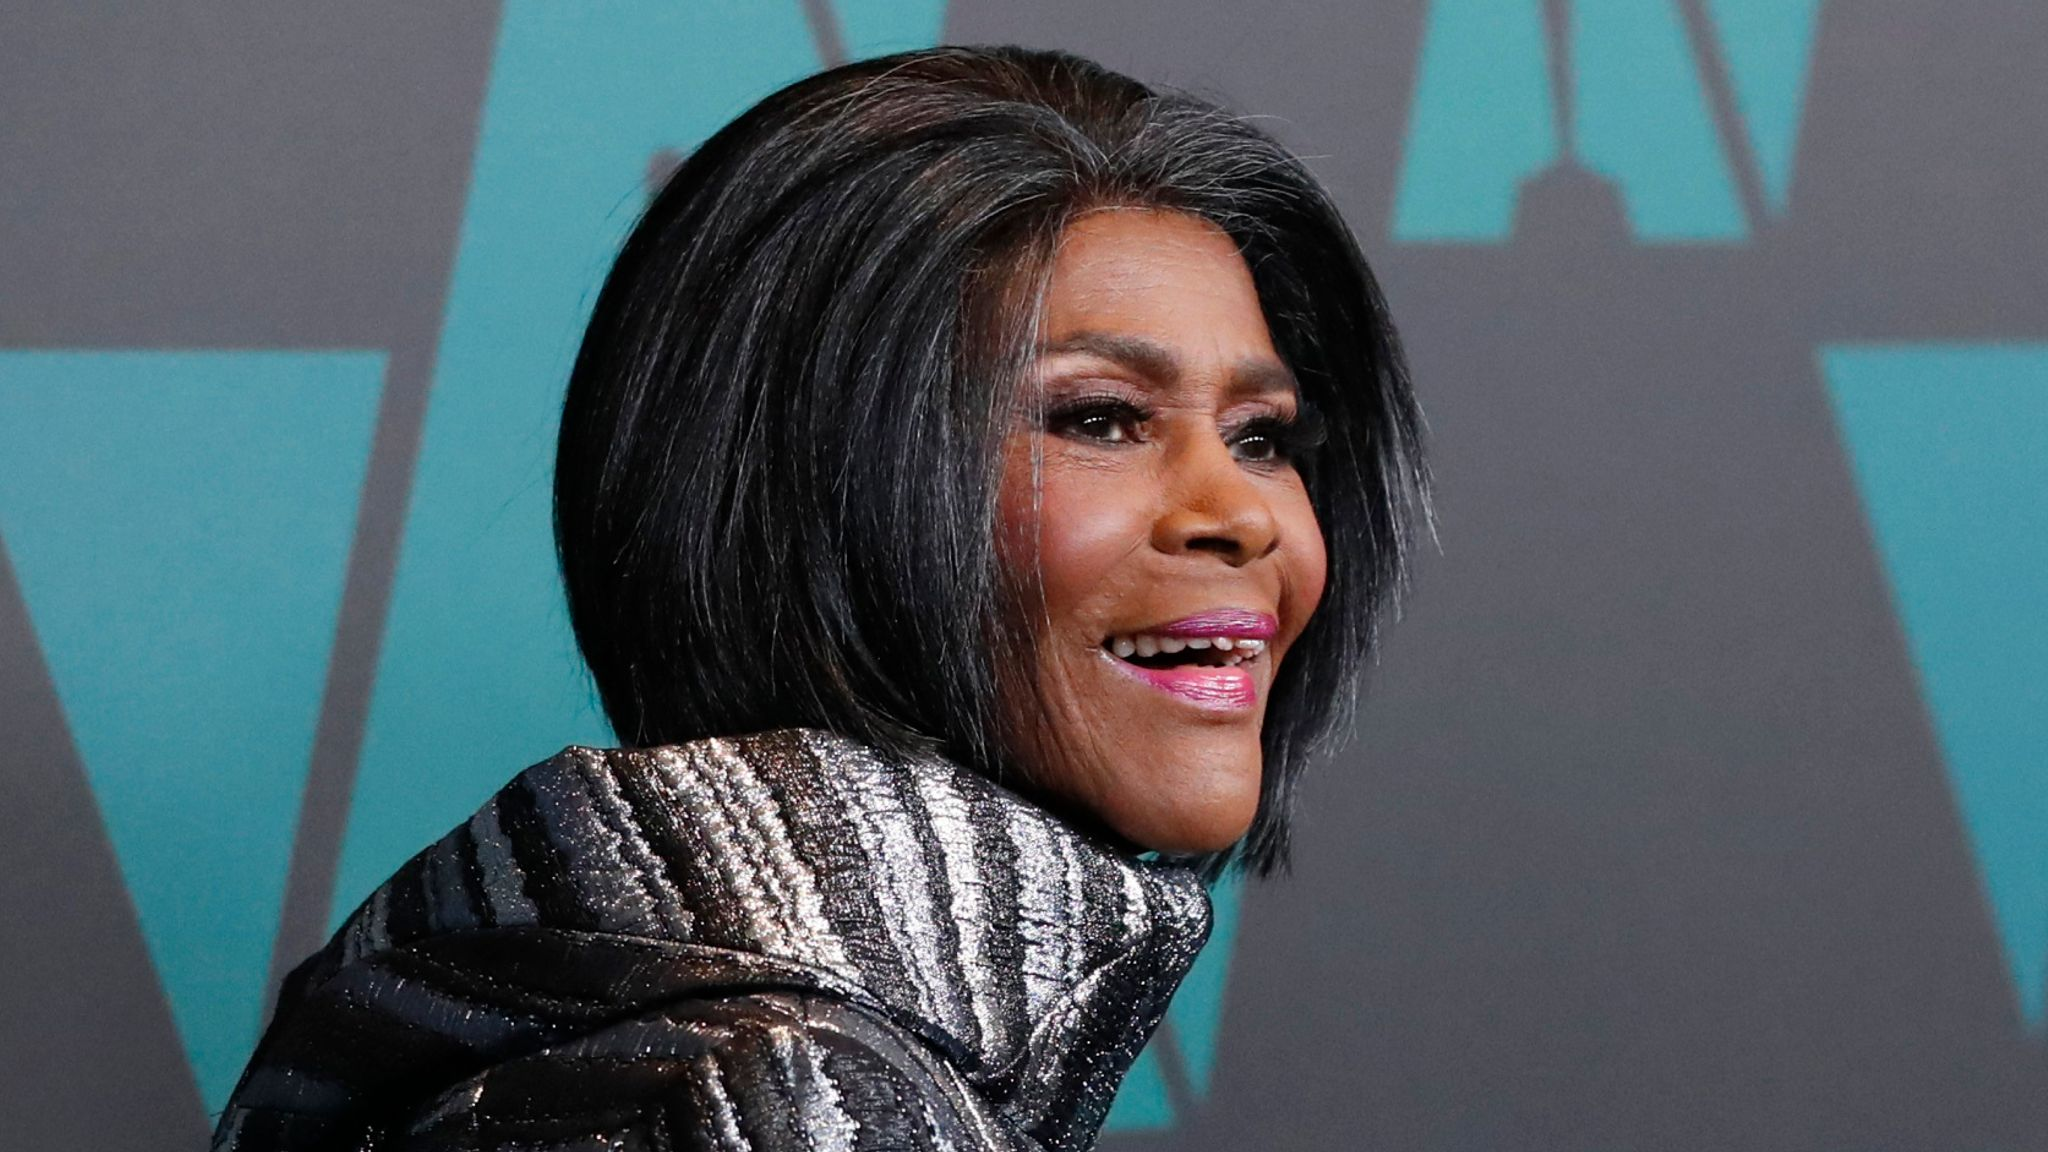 Cicely Tyson: Award-winning star of stage and screen dies aged 96 | Ents & Arts News | Sky News